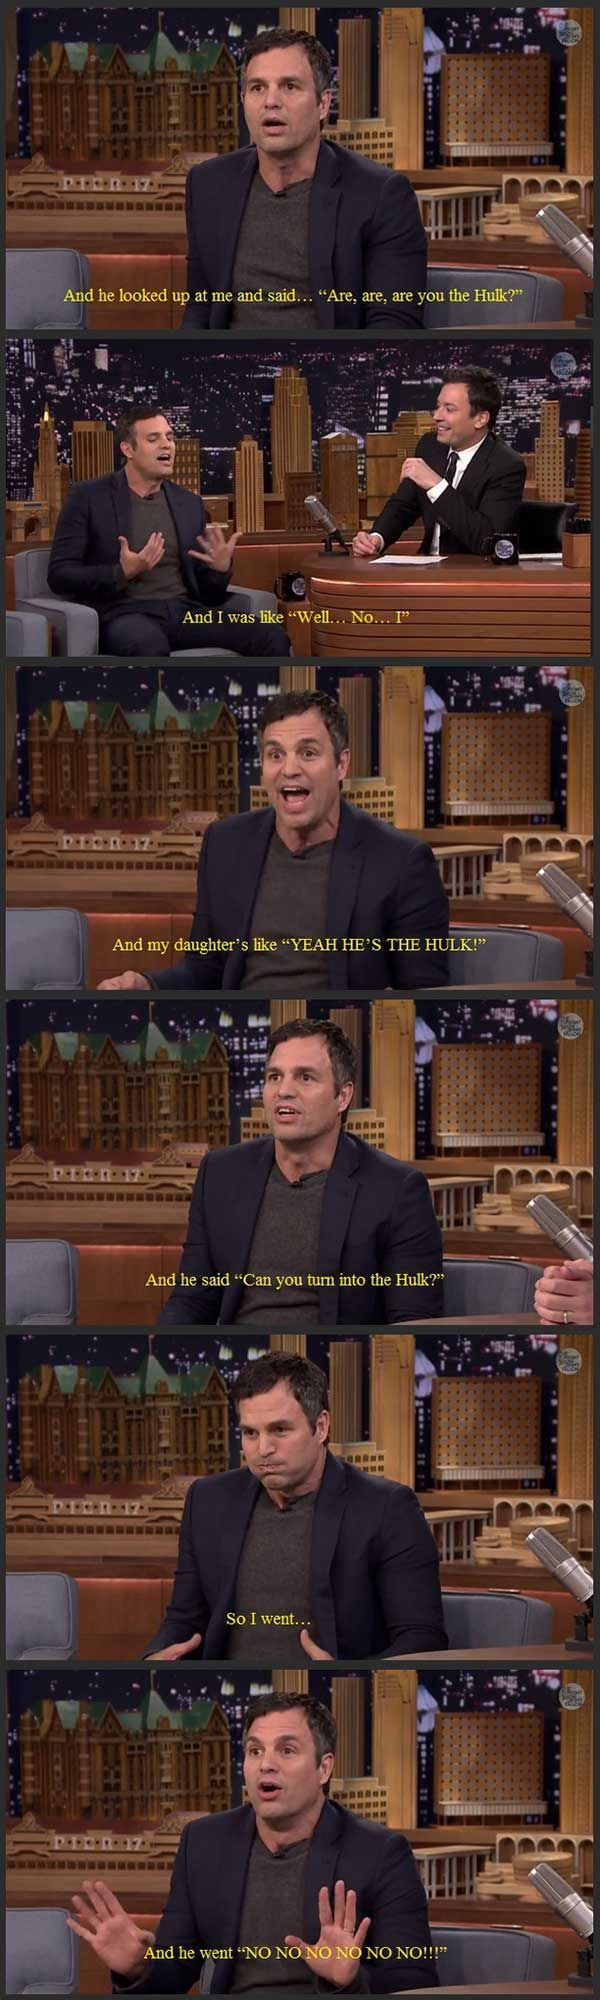 Mark Ruffalo on going to his daughter's preschool